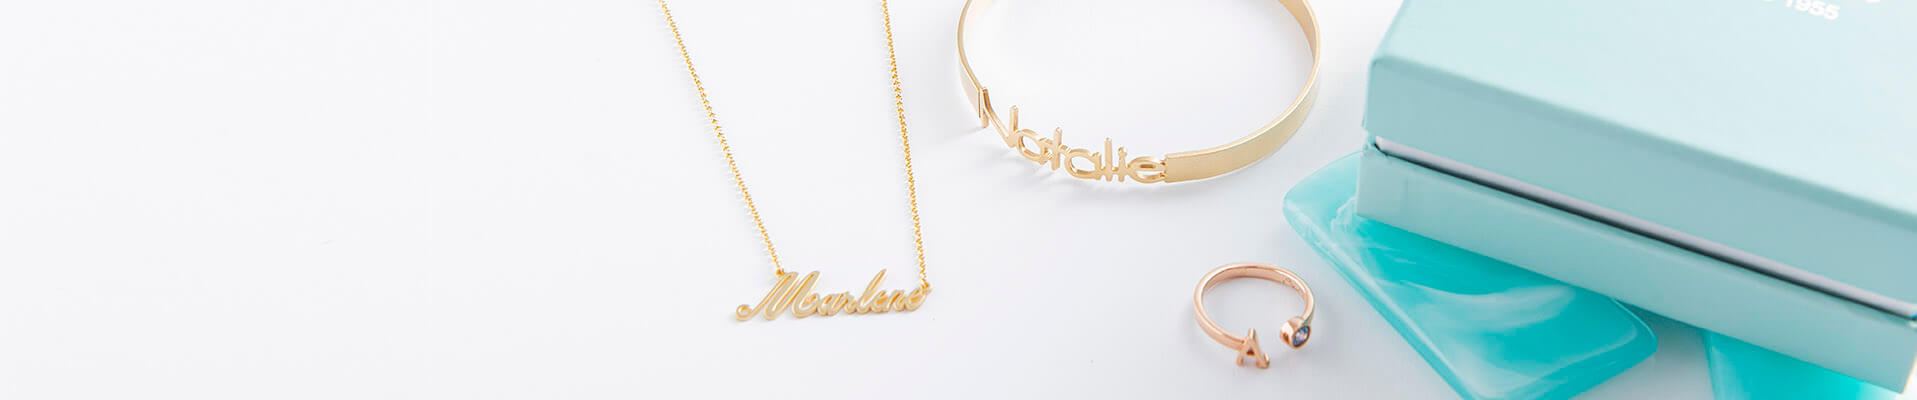 name jewellery web bannner